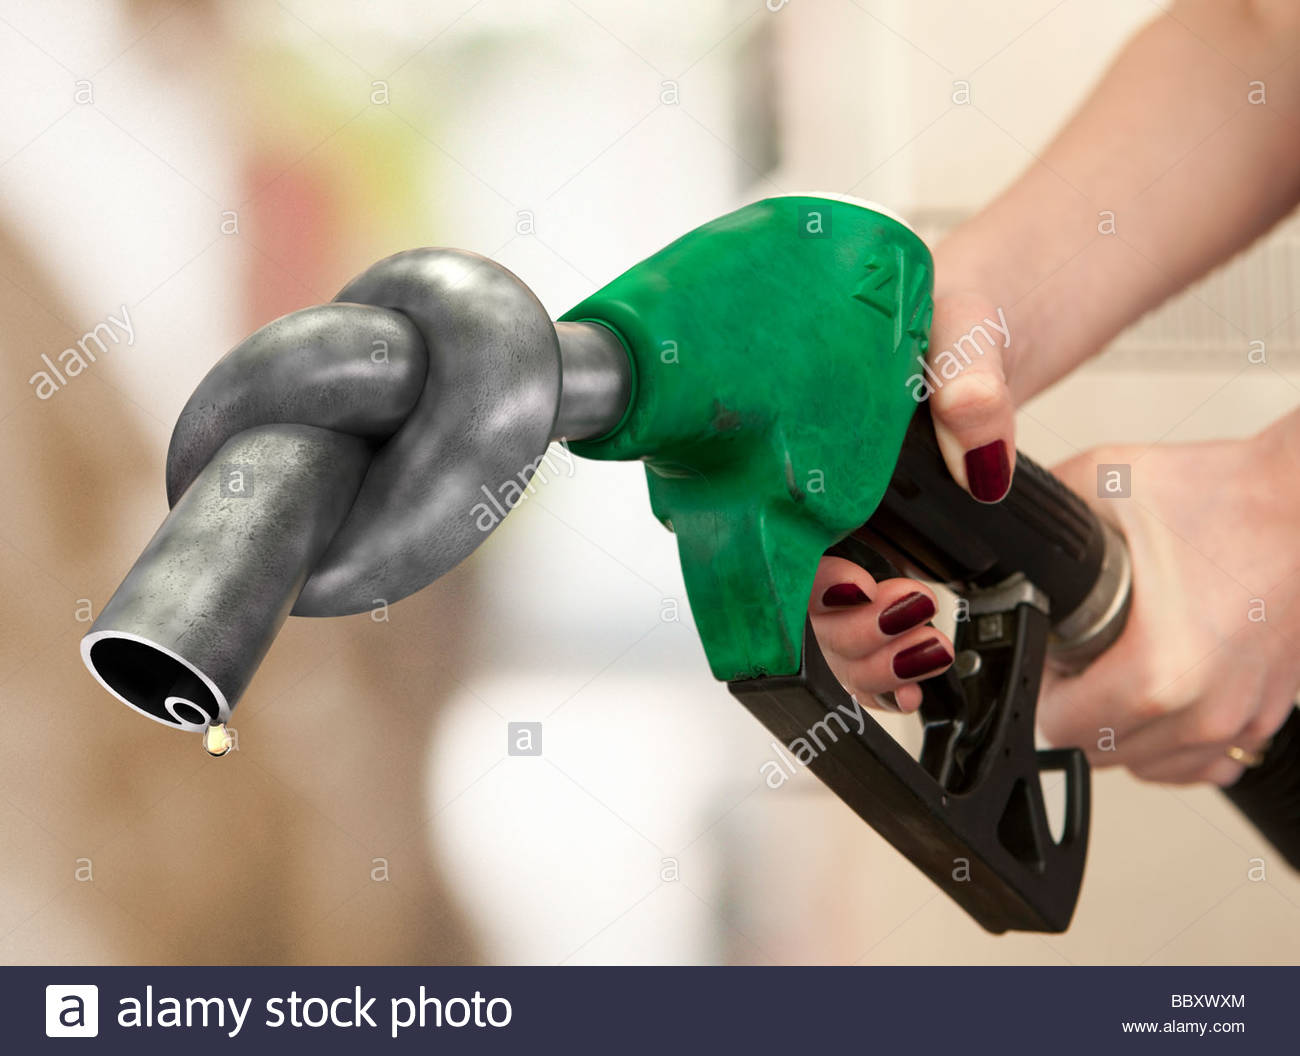 close up of a woman's hands holding a petrol pump with a knot in the nozzle. - Stock Image